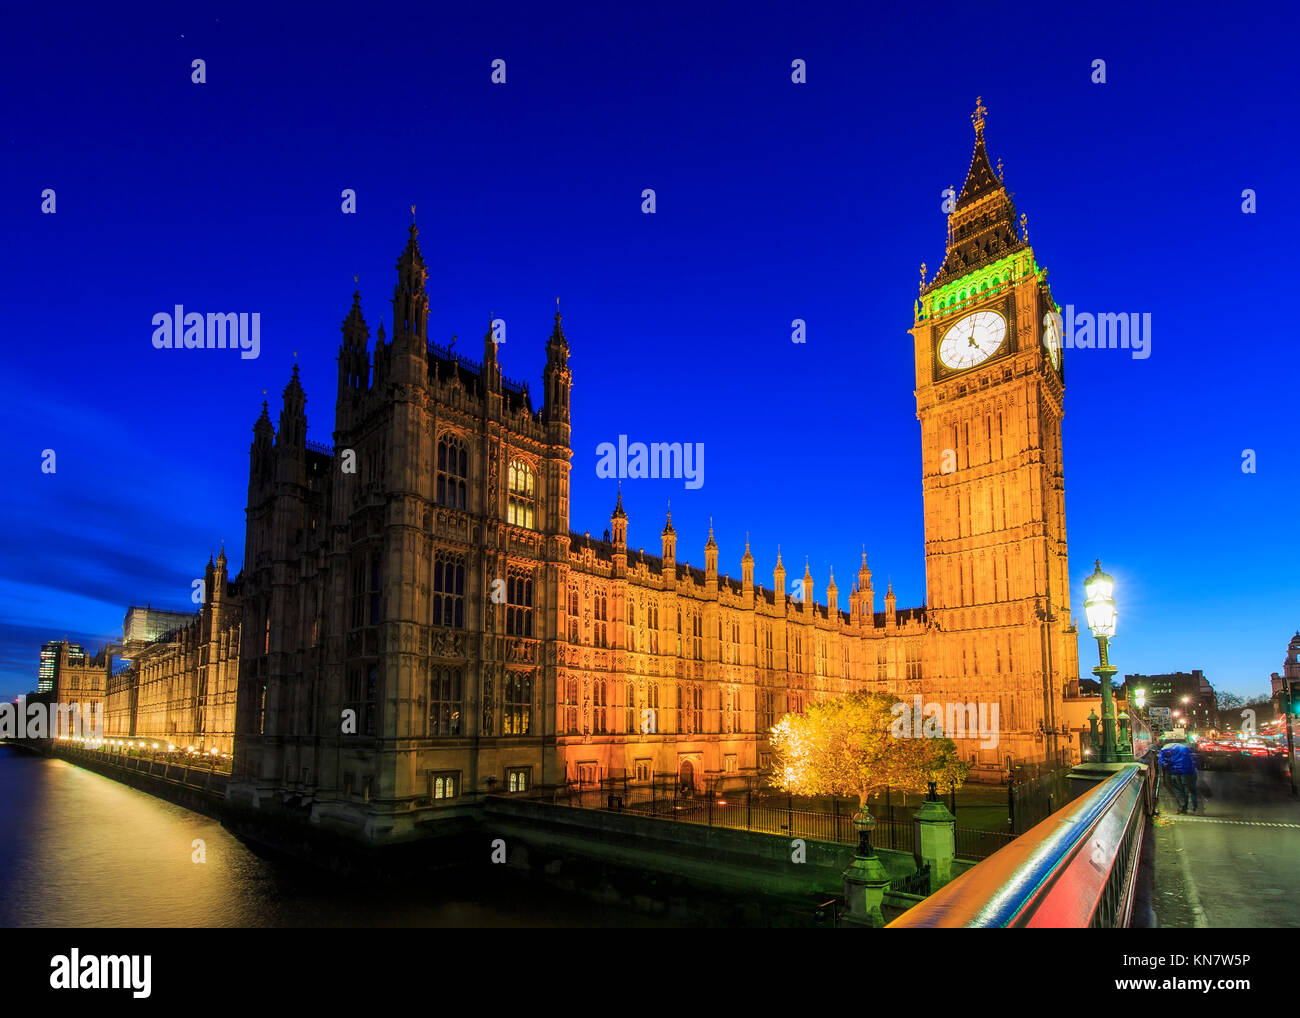 London, NOV 13: Night view of the famous Big Ben on NOV 13, 2015 at London, United Kingdom - Stock Image